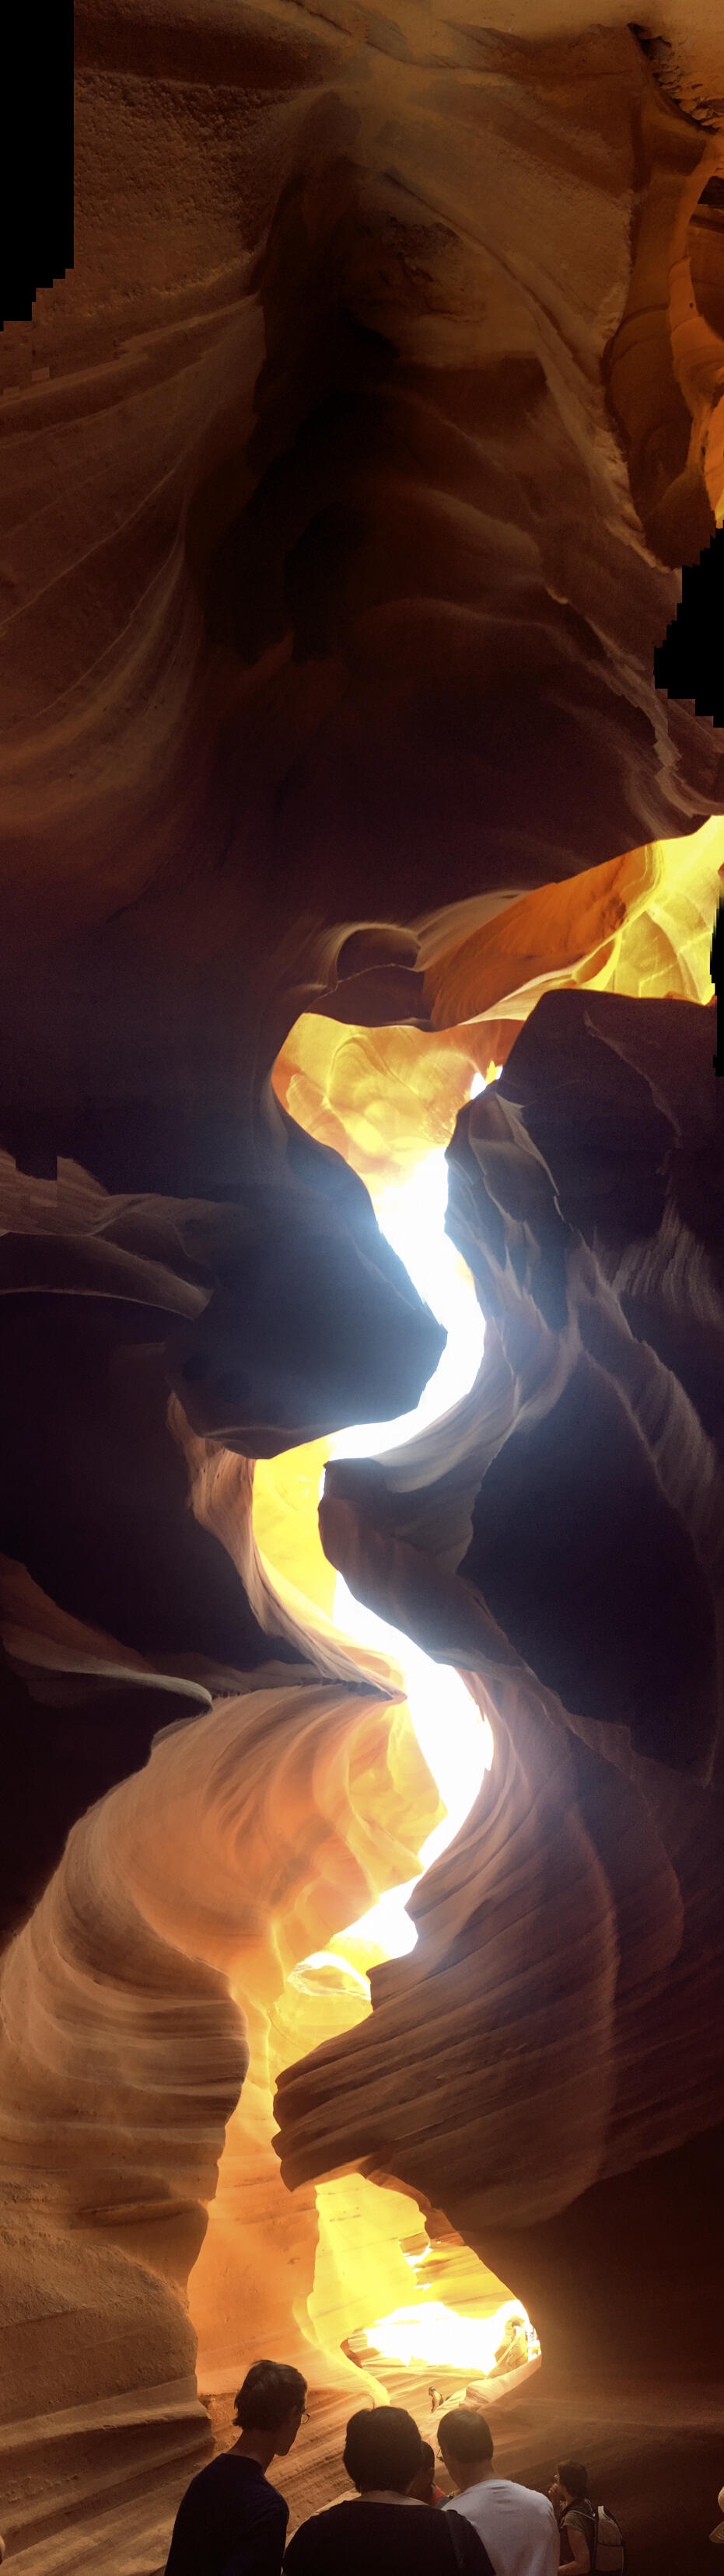 Page Arizona - Antelope Canyon-10